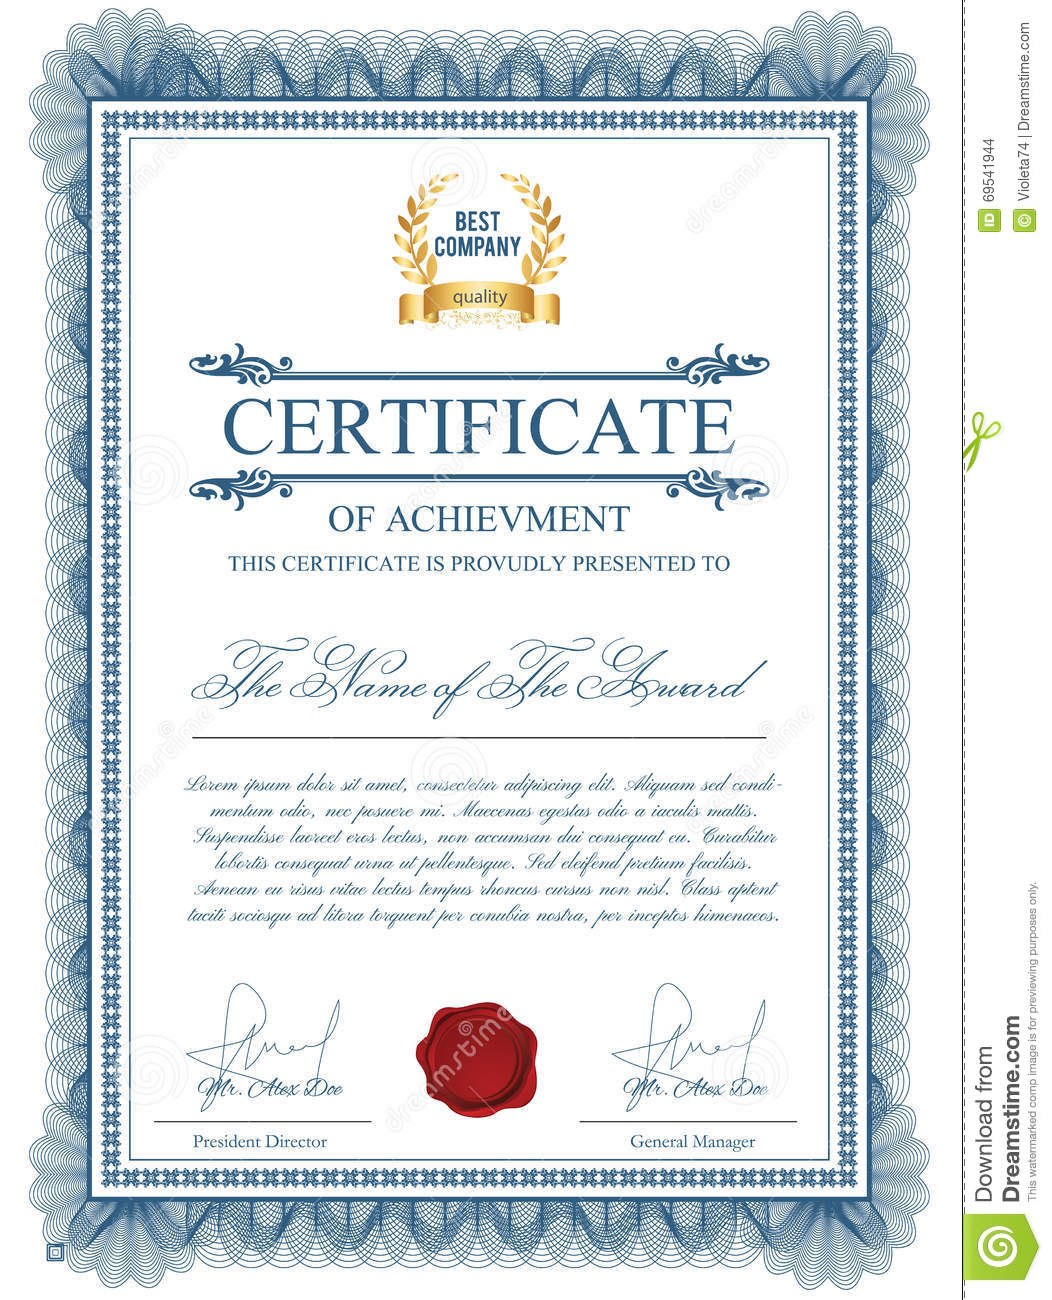 Certificate Template With Guilloche Elements Stock Vector With Regard To Validation Certificate Template